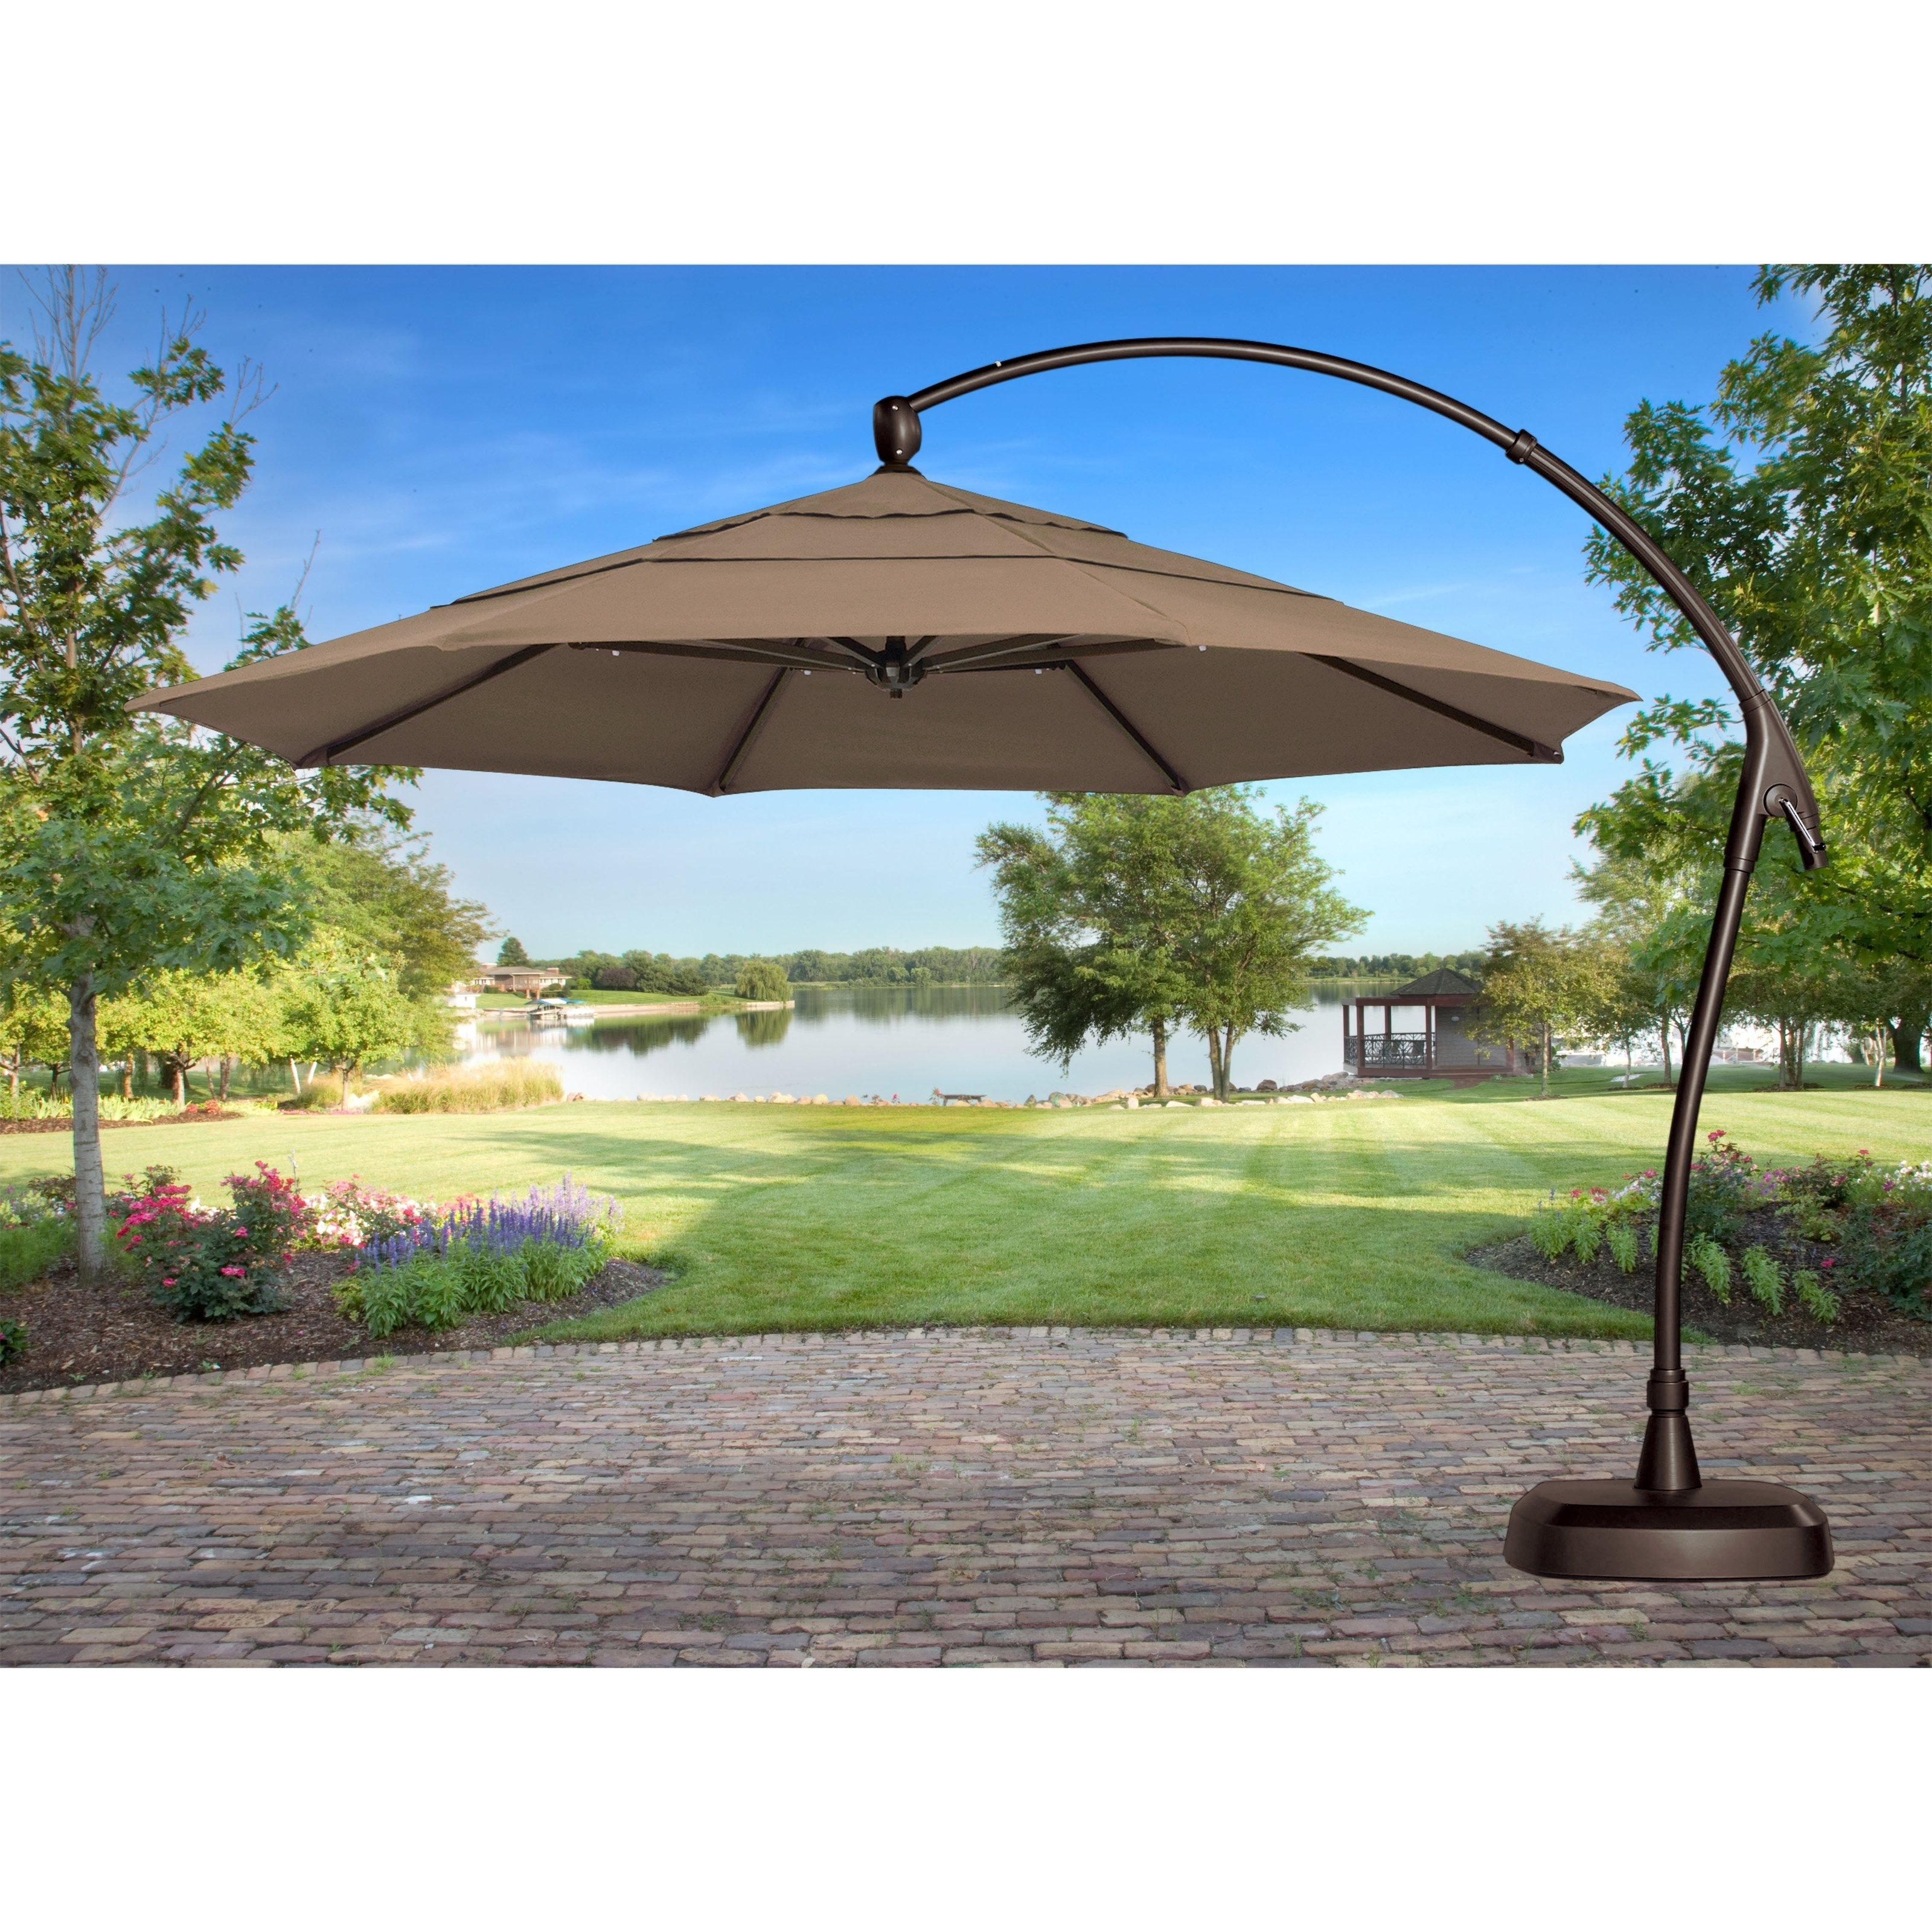 Patio Umbrellas At Home Depot Pertaining To Widely Used Cantilever Patio Umbrella Home Depot F41X About Remodel Most (View 12 of 20)